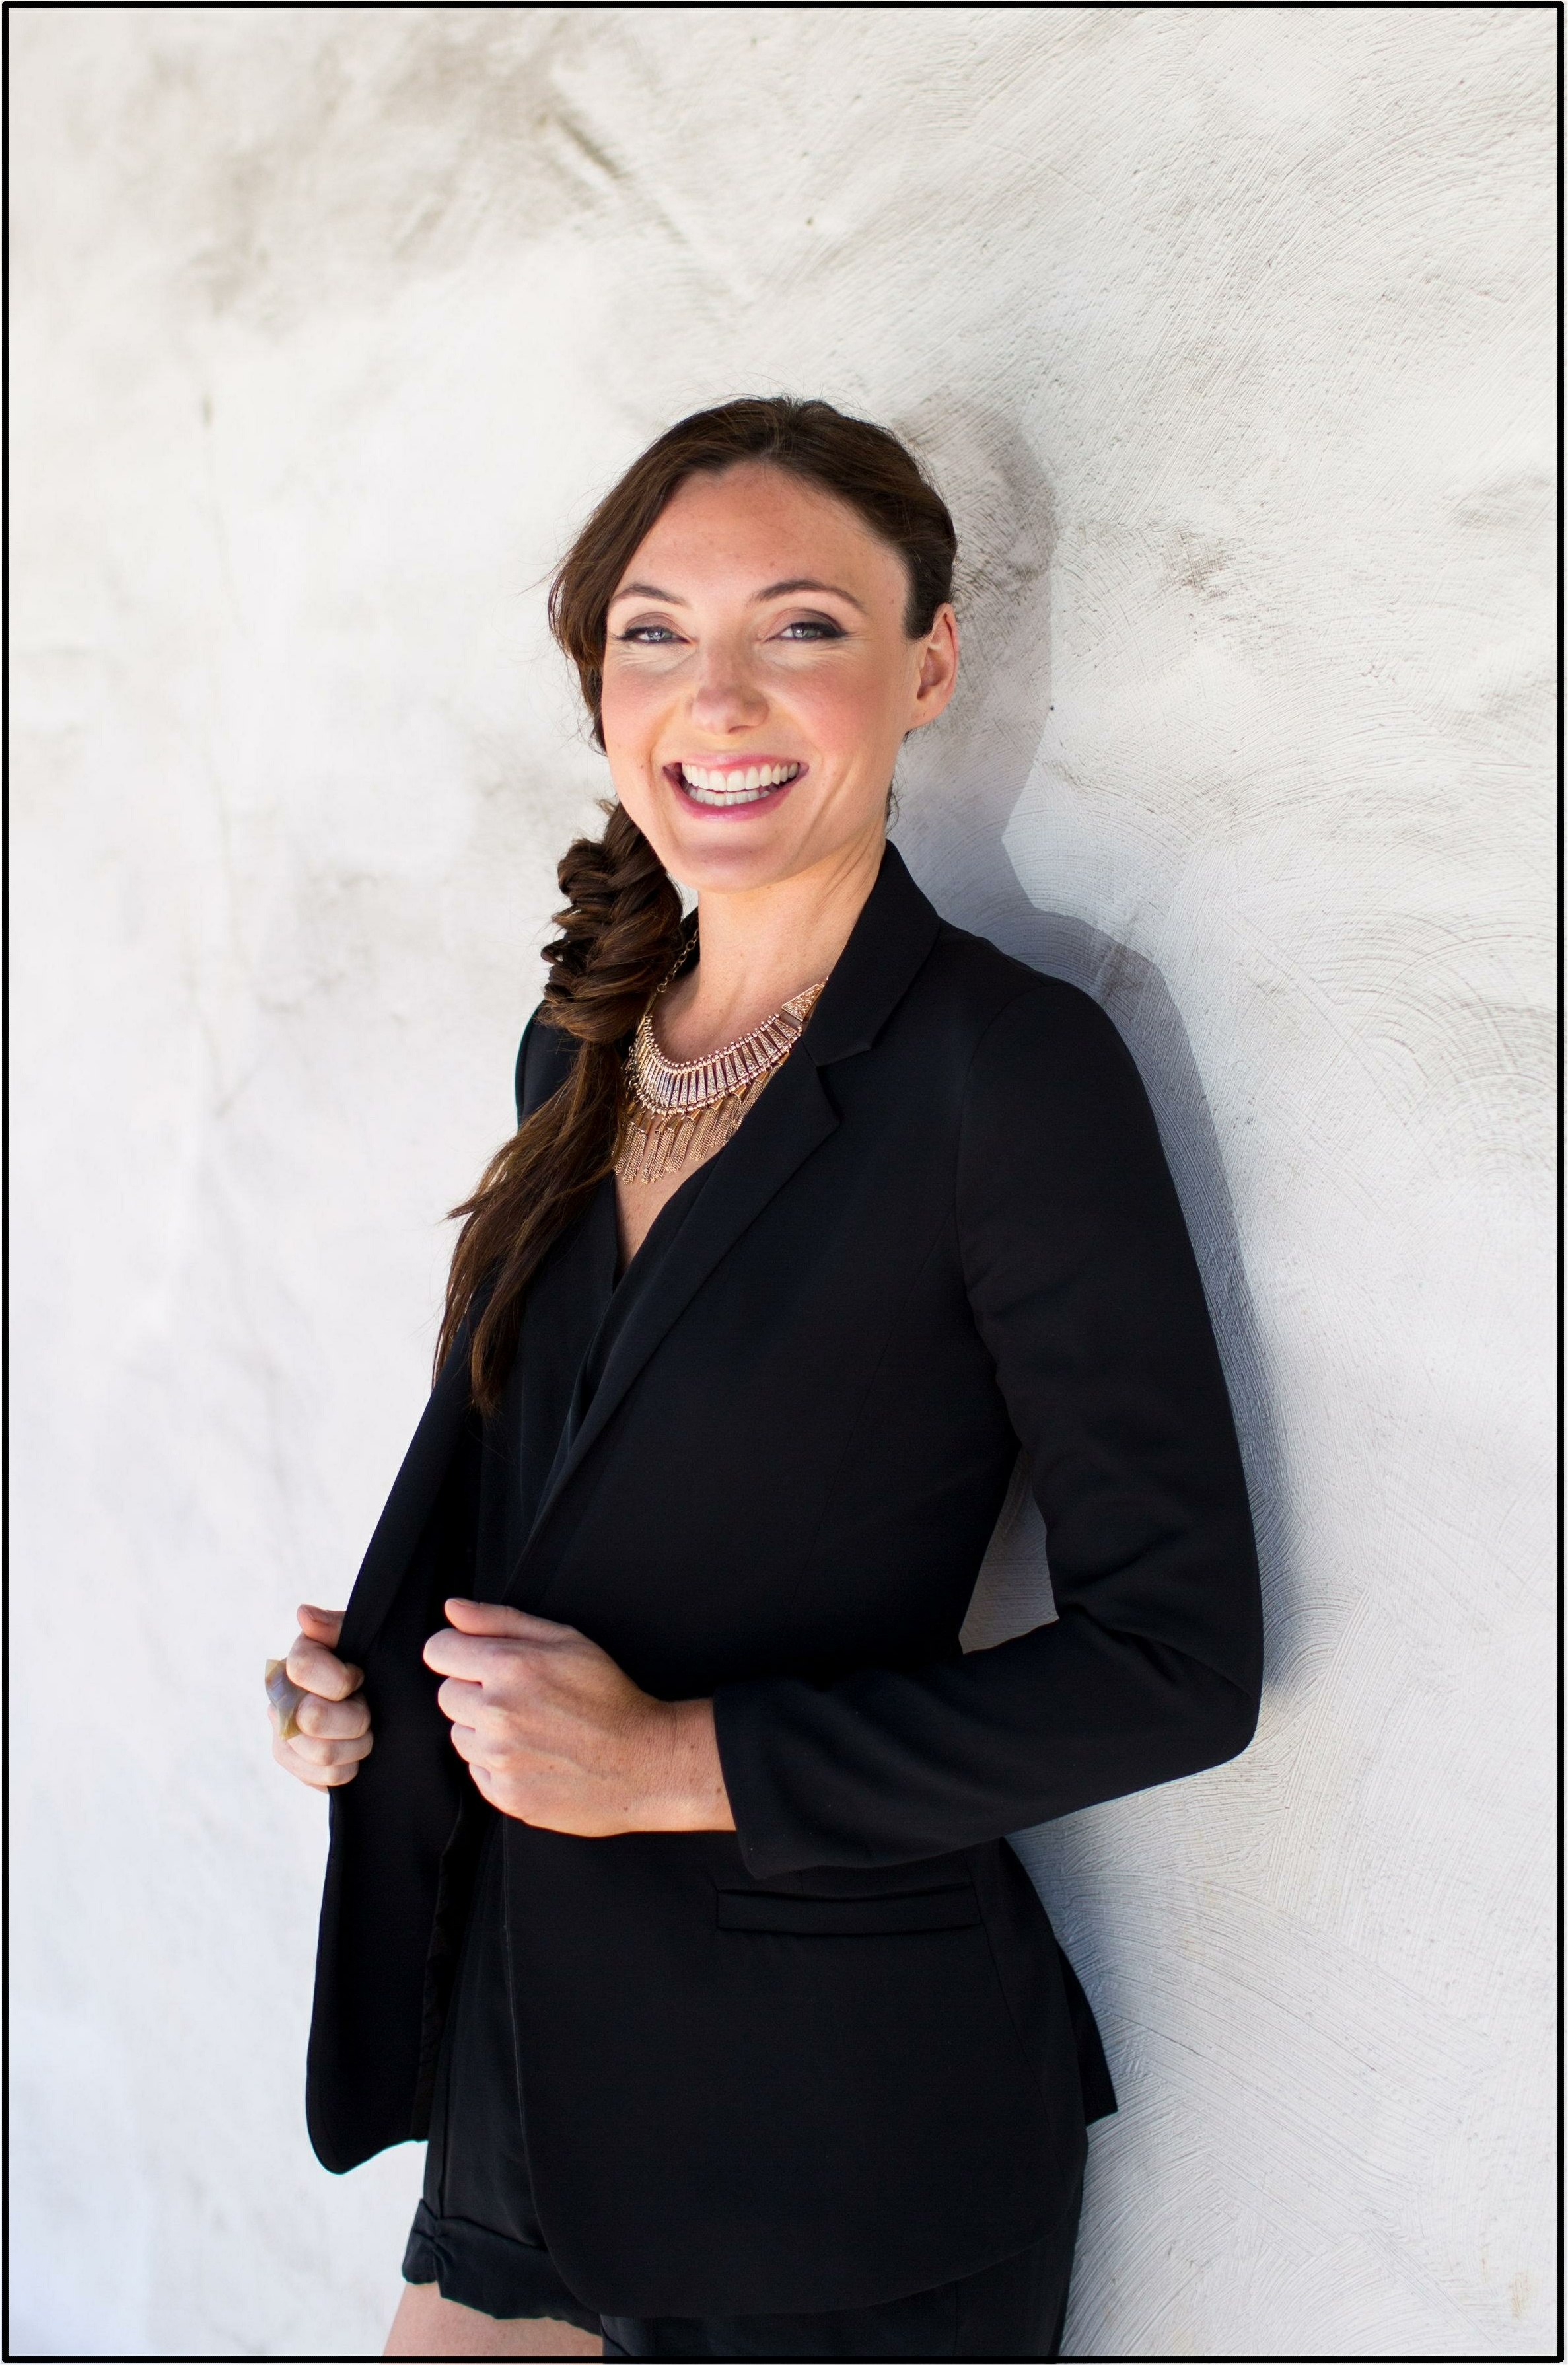 Meet Danielle Frey, owner of Bloom, Mendocino, and unquestionably one of the best makeup artists in Northern California. Danielle and her team offer premier, inspirational bridal makeup and hair services, both at her salon or on location.